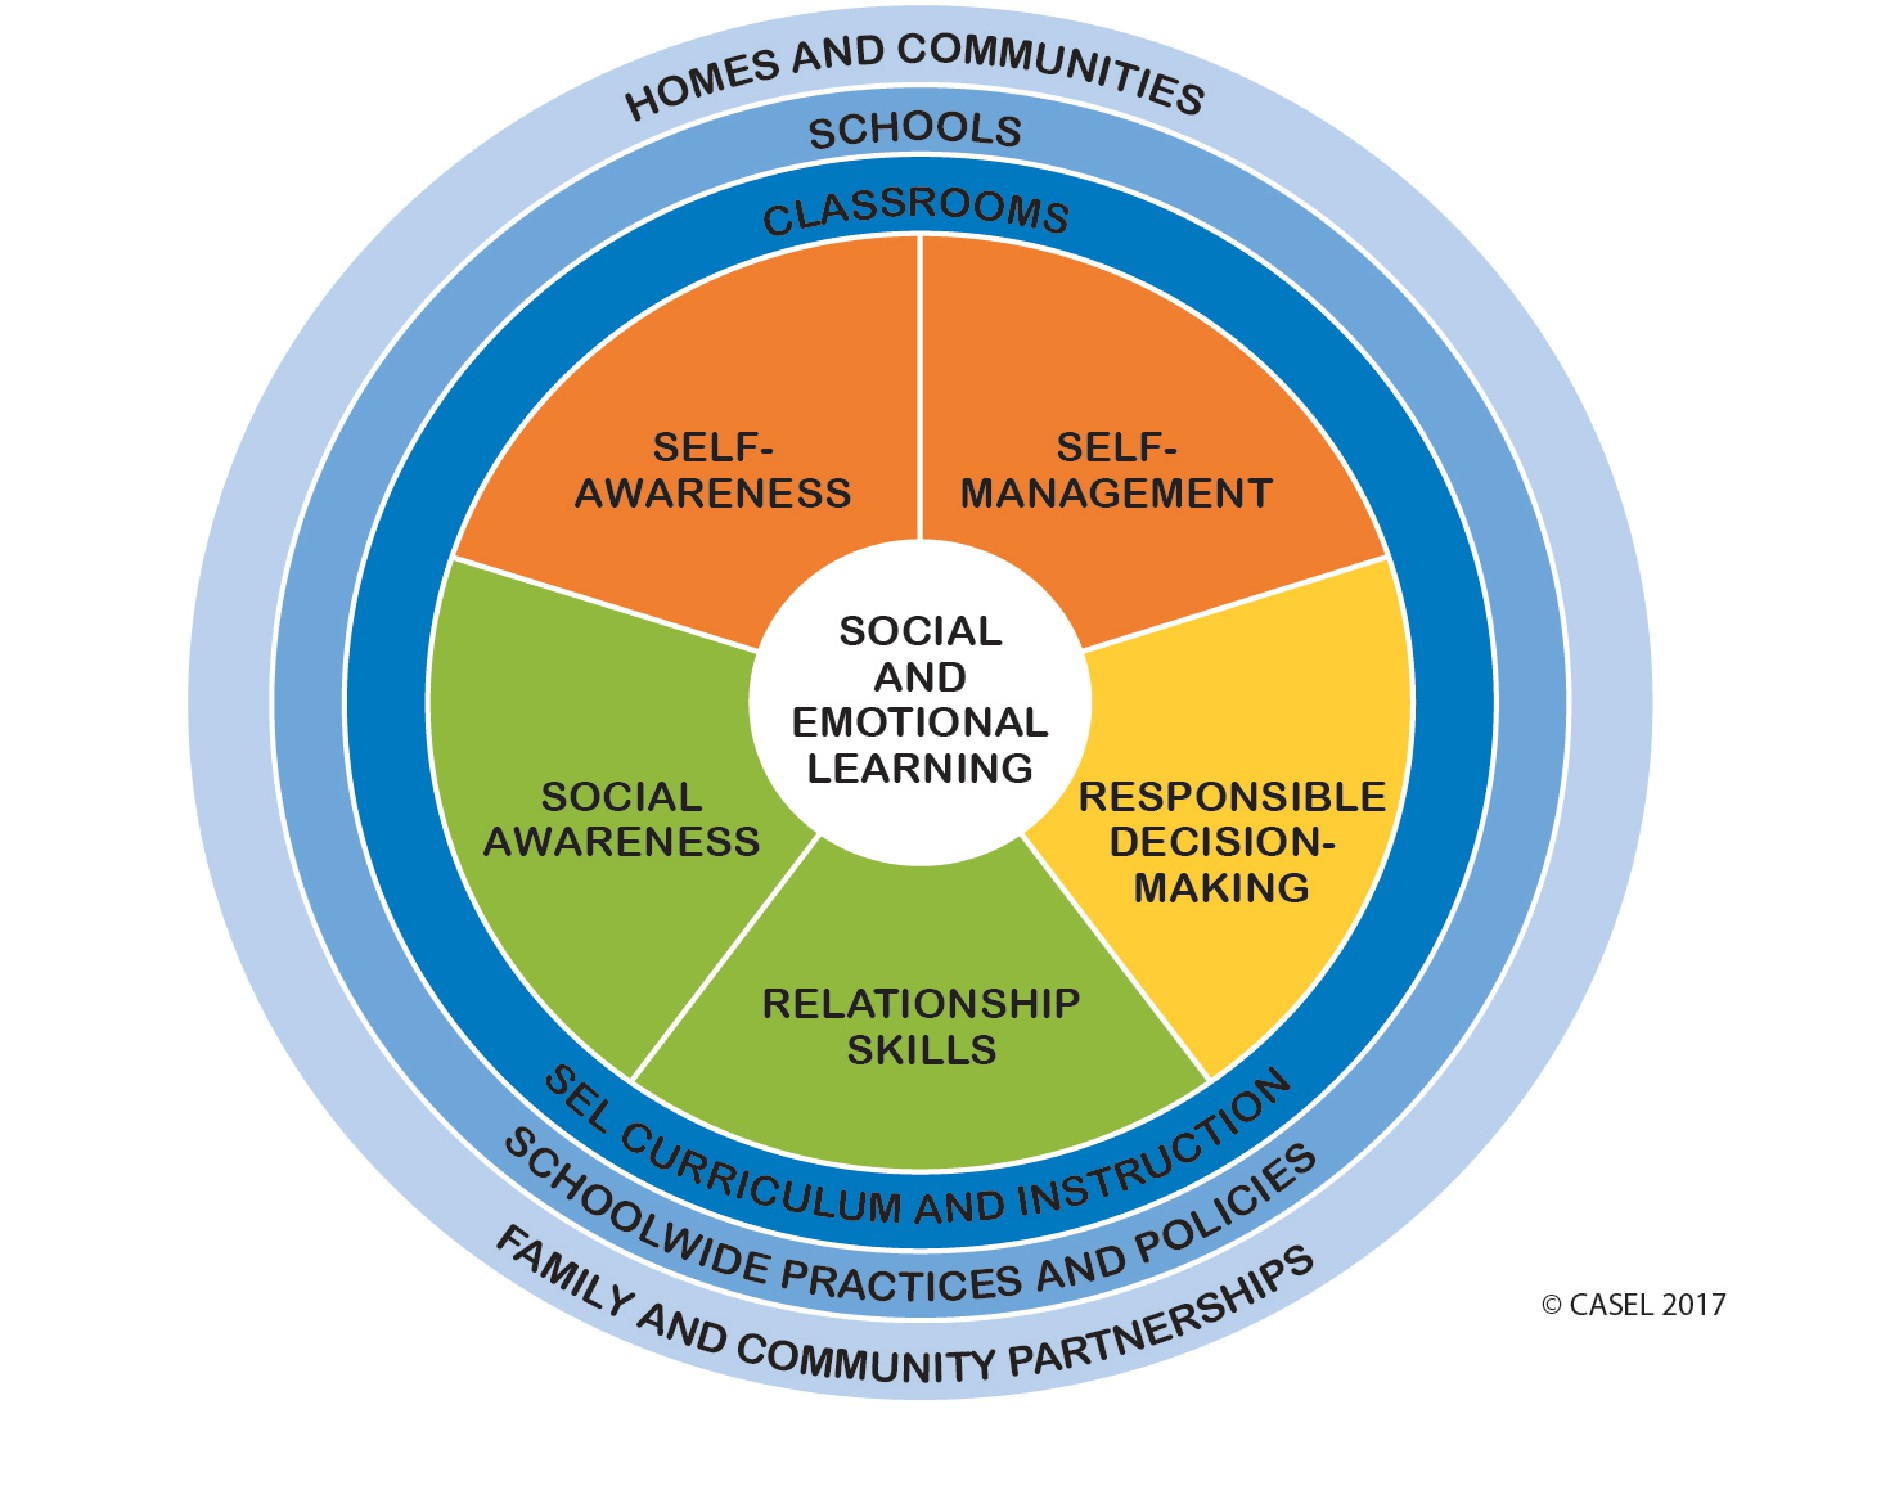 blank pyramid diagram 5 craftsman lawn tractor mower deck what are social emotional learning standards?